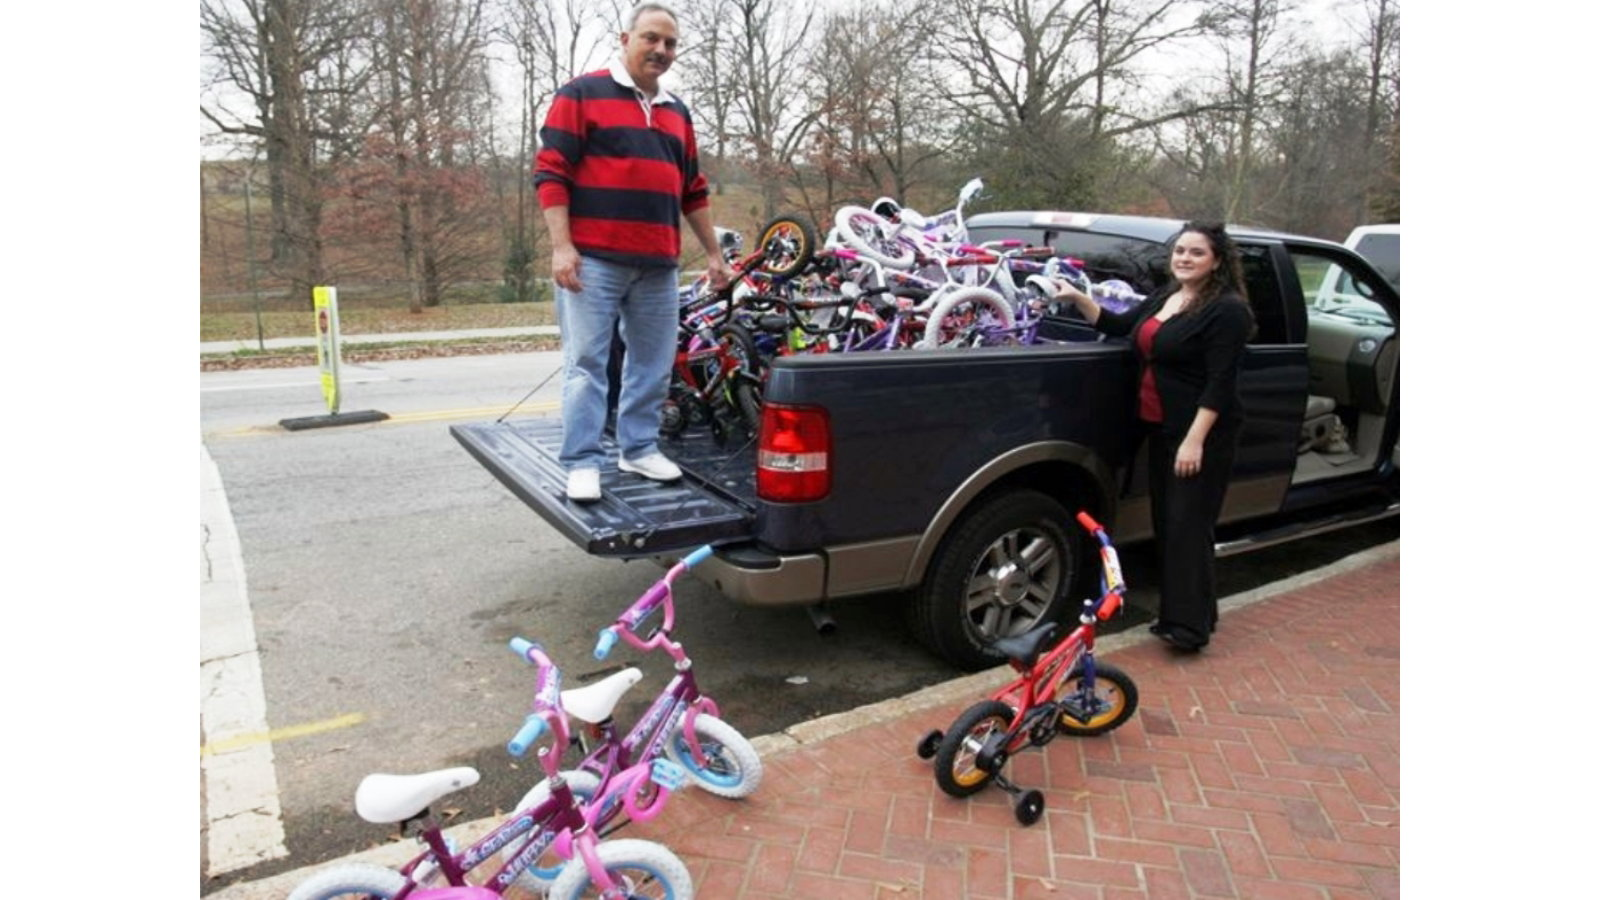 St. Elias Church Gives a Truckload of Bikes